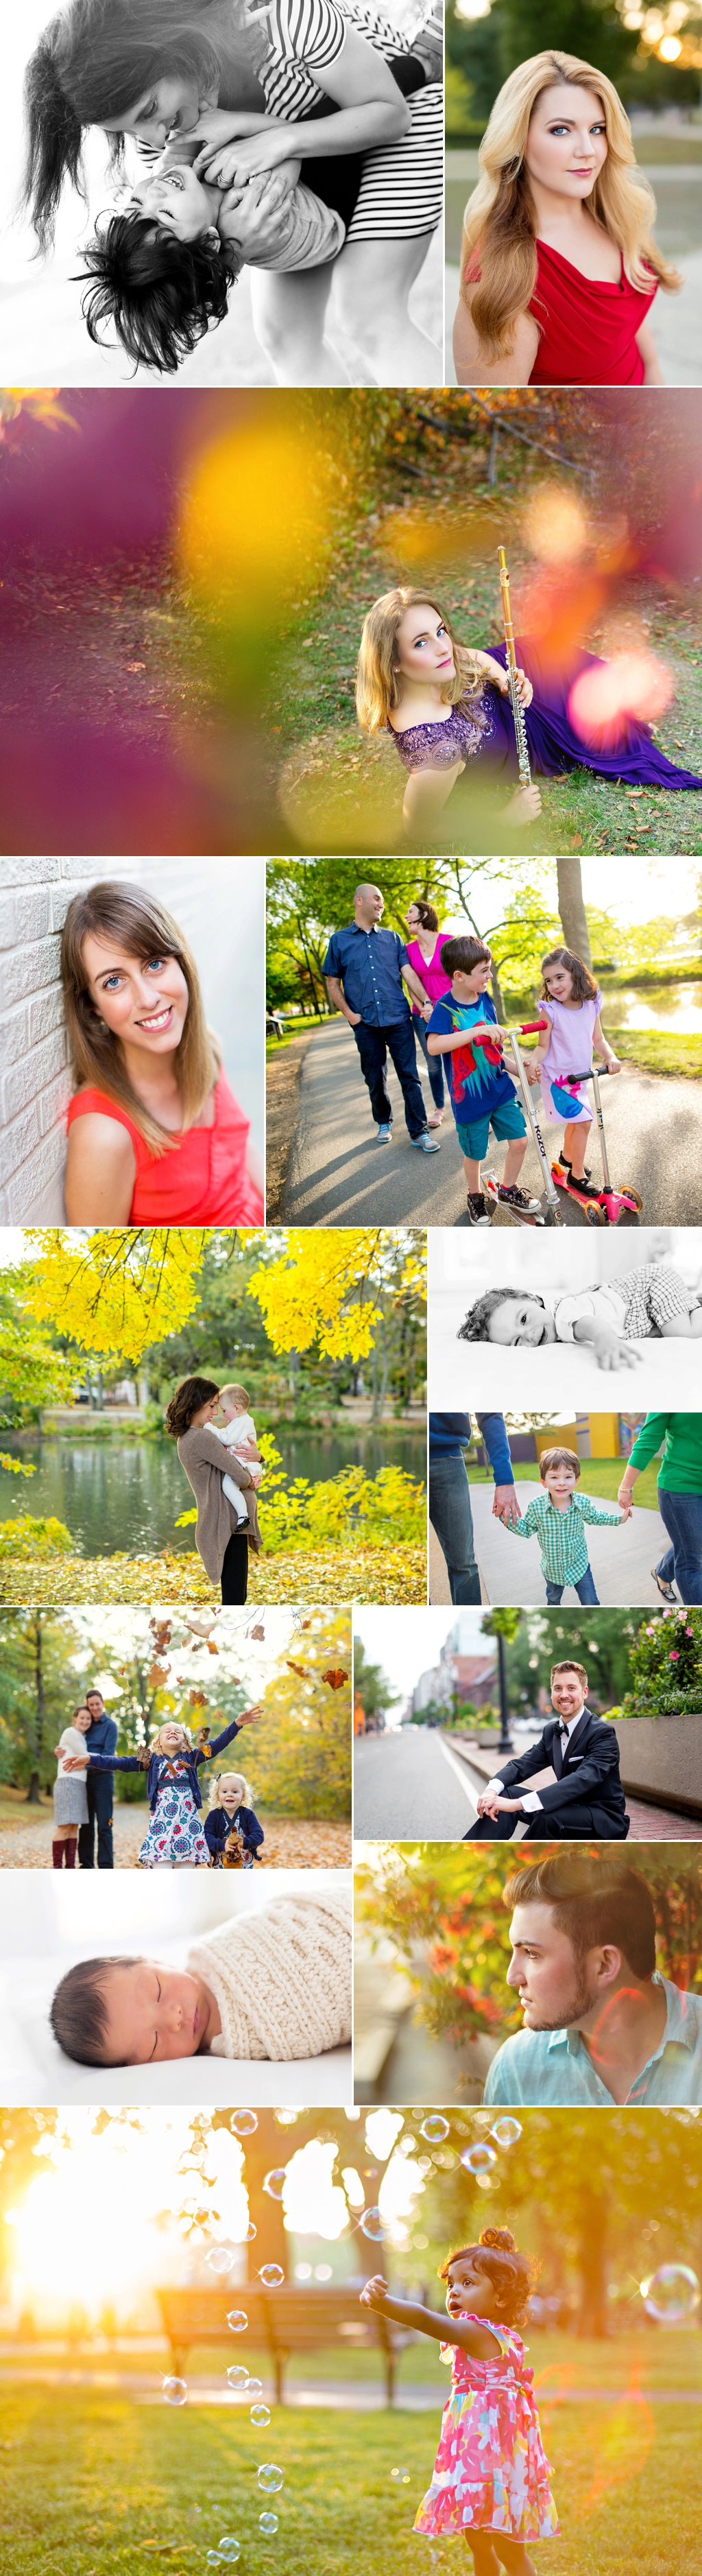 Family photographs outdoors in Boston, taken by Kate L Photography.